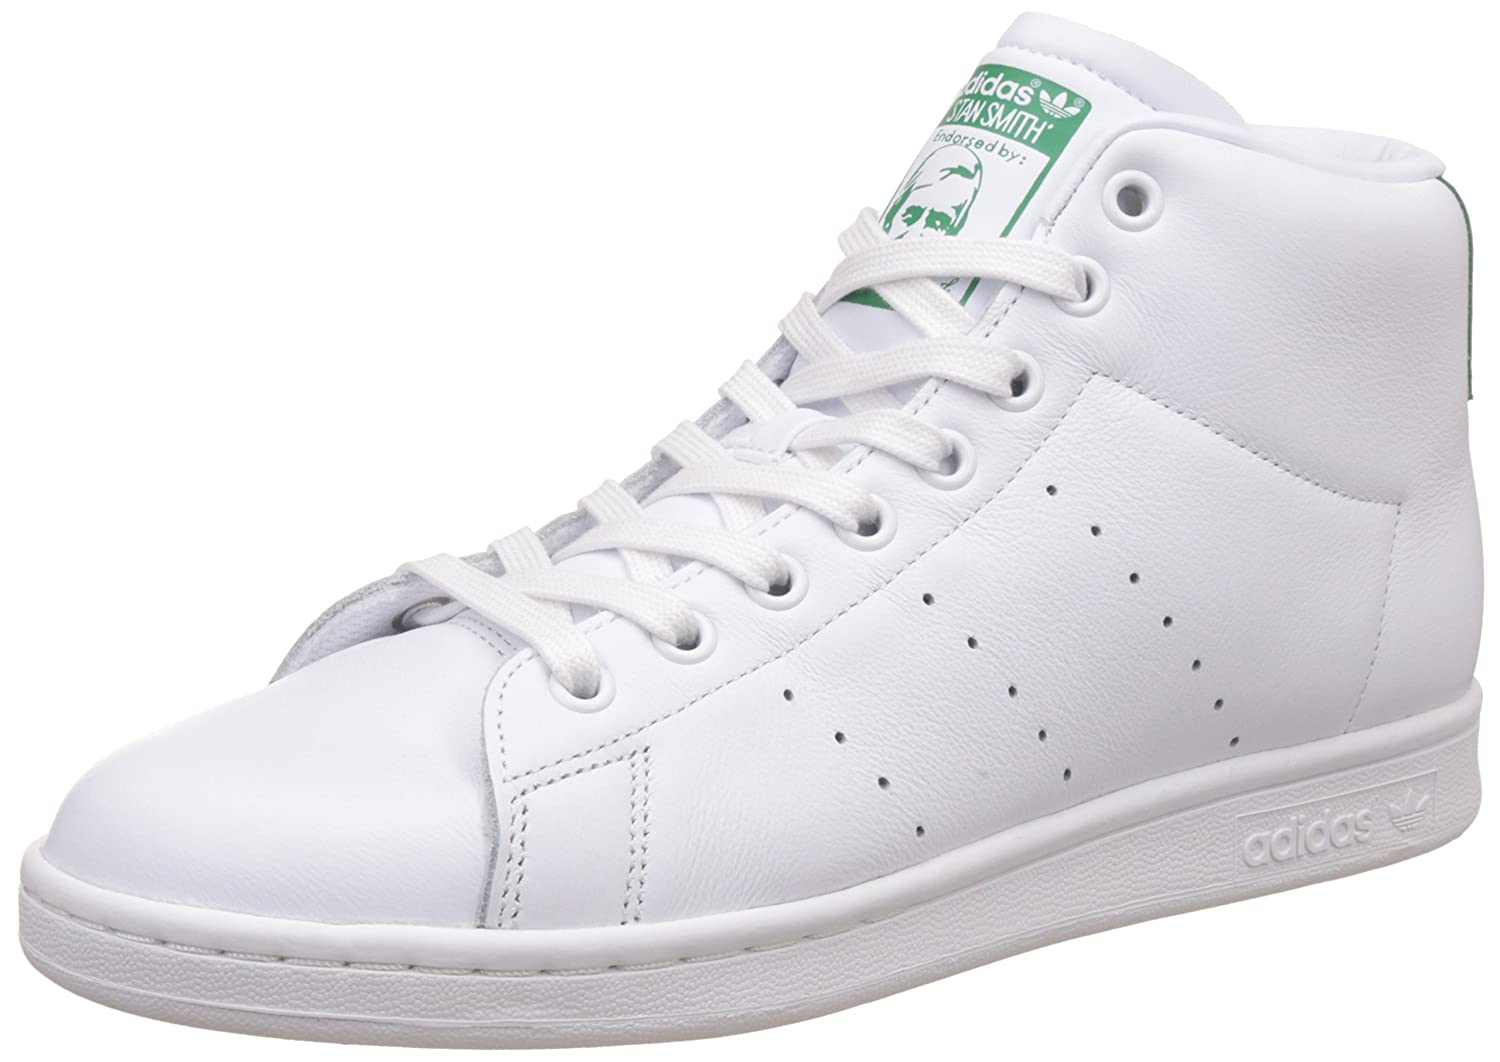 adidas Stan Smith Mid, Sneakers Basses Homme, Blanc ftwwht/Green, 46 2/3 EU: Amazon.fr: Chaussures et Sacs